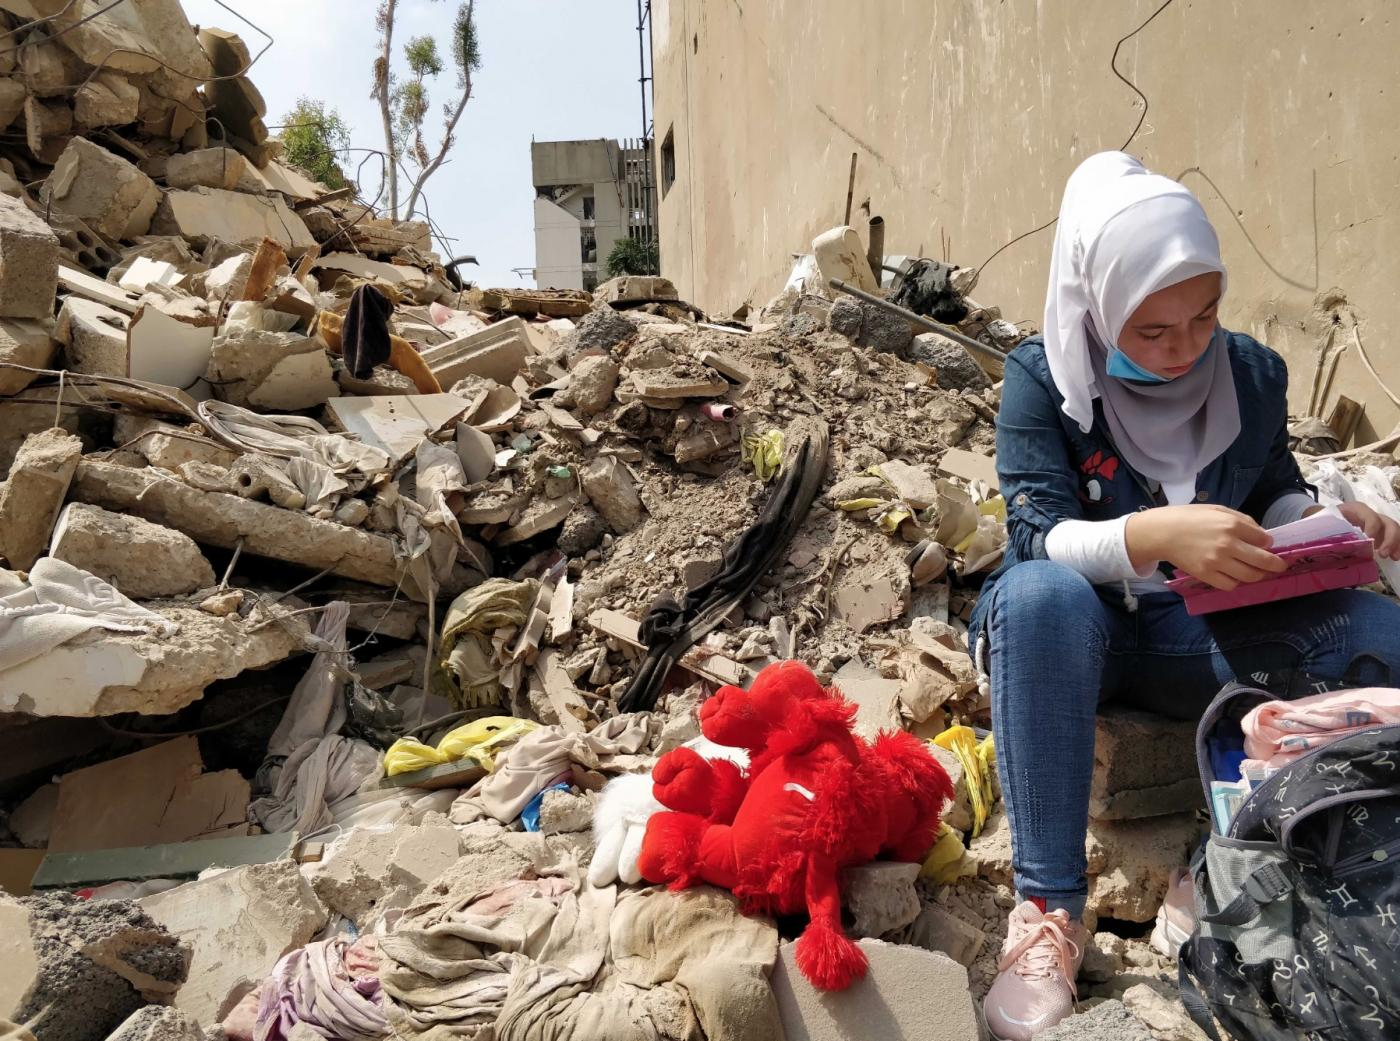 Dima, a Syrian refugee, visits her collapsed home, recovering her backpack and a teddy she found in the rubble after the explosion (MEE/Nadda Osman)